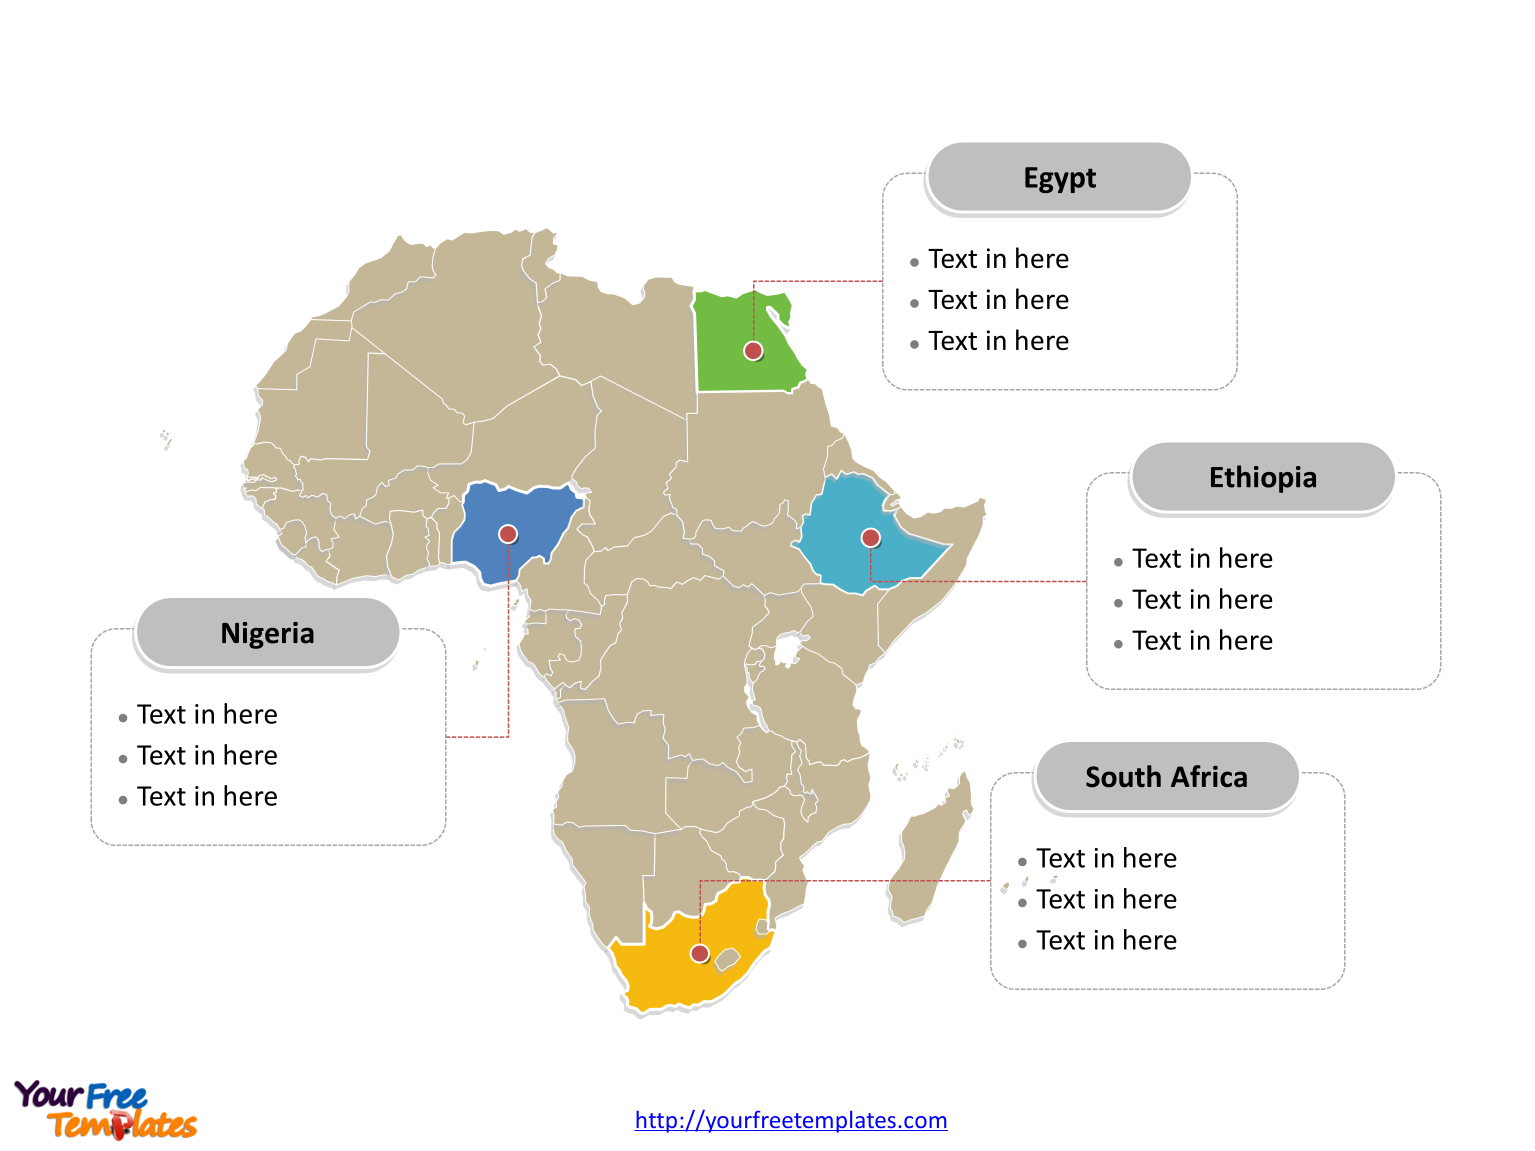 Map of africa free templates free powerpoint templates map of africa with political division and major countries labeled on the africa map free templates gumiabroncs Choice Image